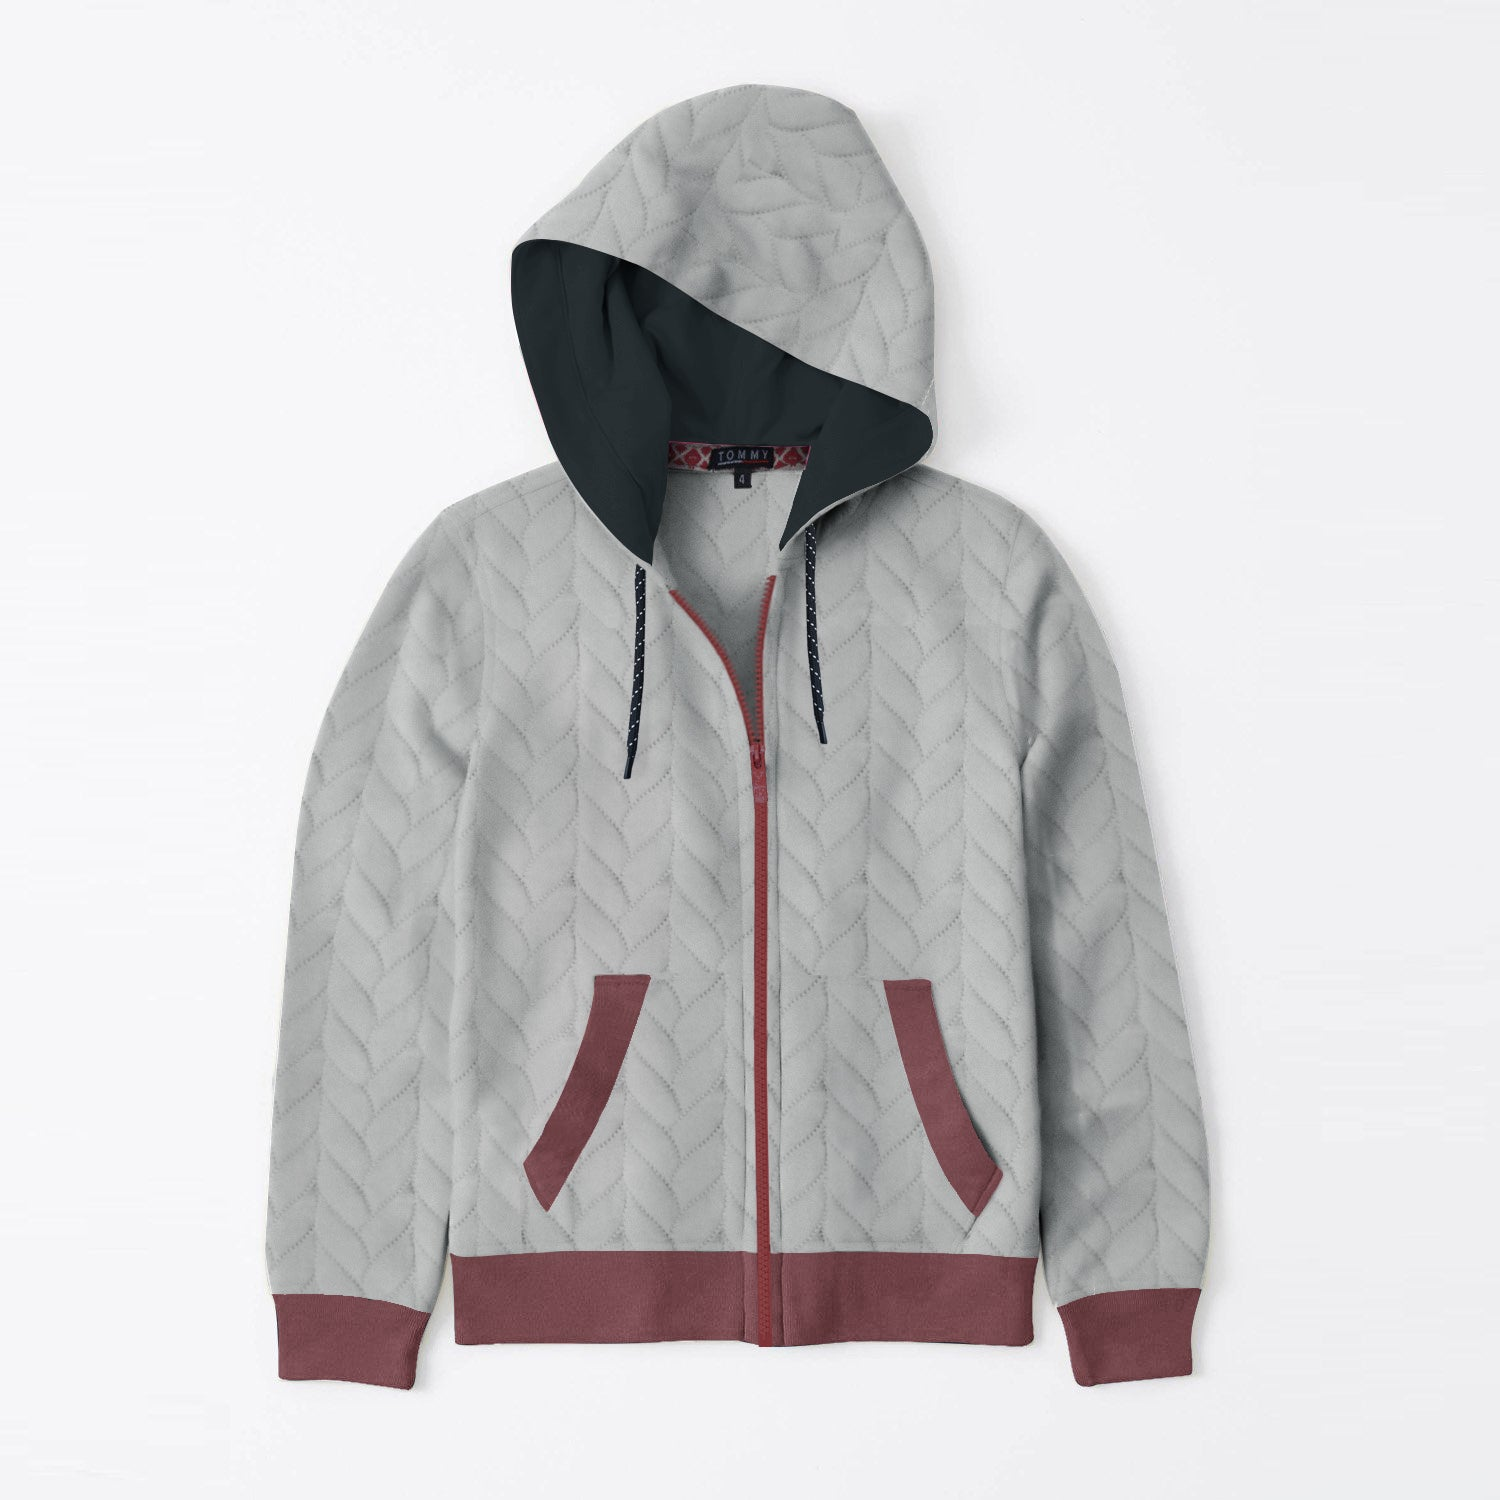 TH Quilted Zipper Hoodie For Kids-Grey & Maroon-BE12921